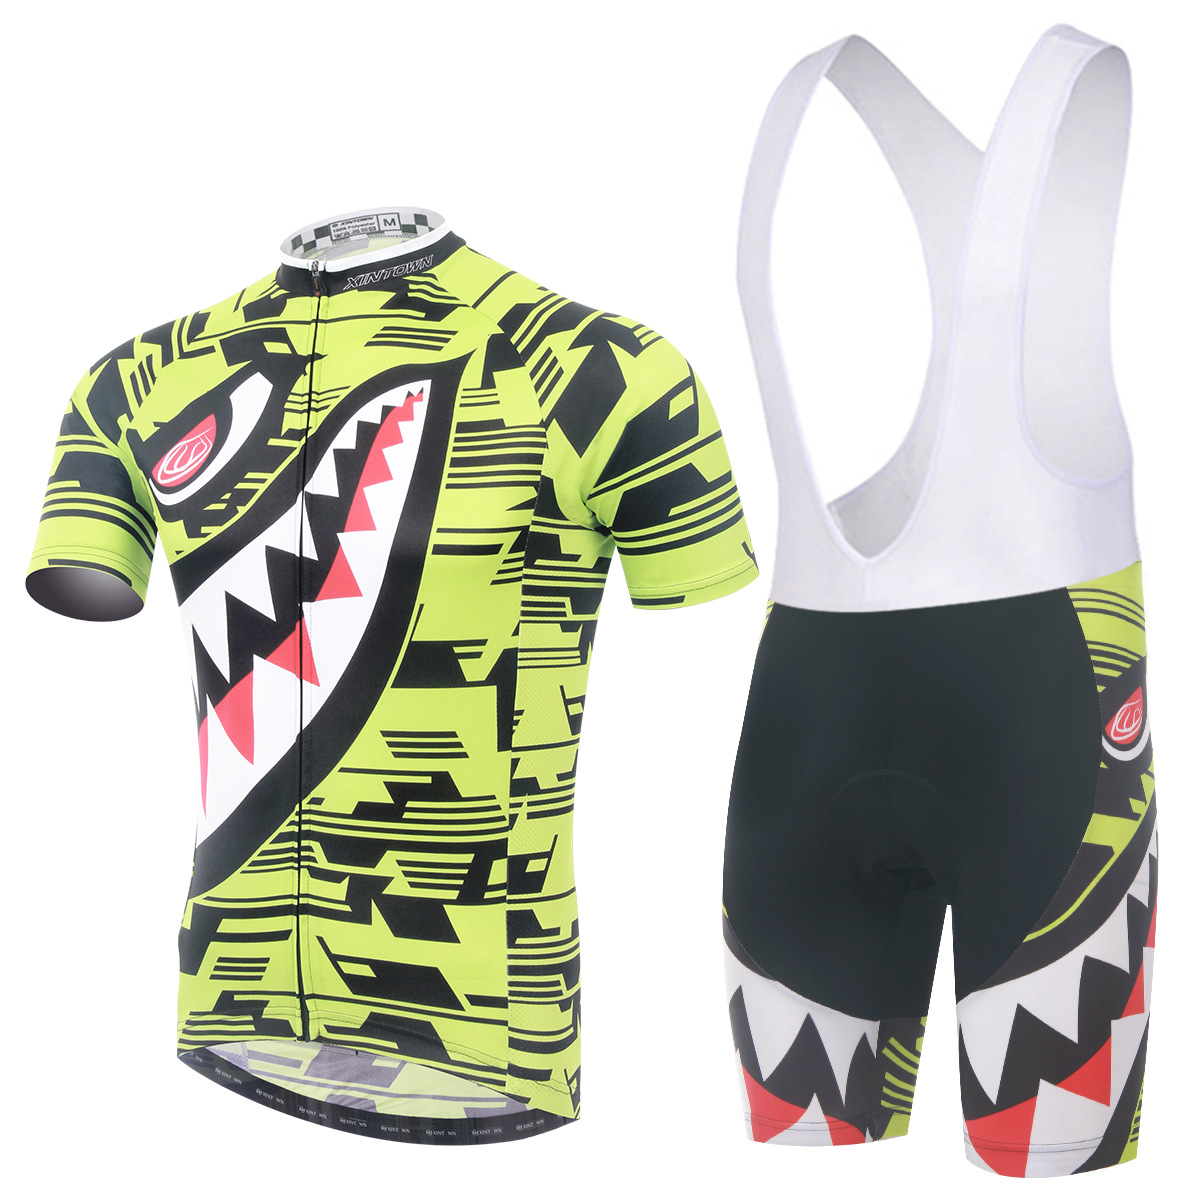 Cycling Set Men Summer Short Sleeve and Bib Shotrs New Yellow Shark Pattern Cool Breathable Bicycle Set Bike Clothing Ciclismo 2016 new men s cycling jerseys top sleeve blue and white waves bicycle shirt white bike top breathable cycling top ilpaladin